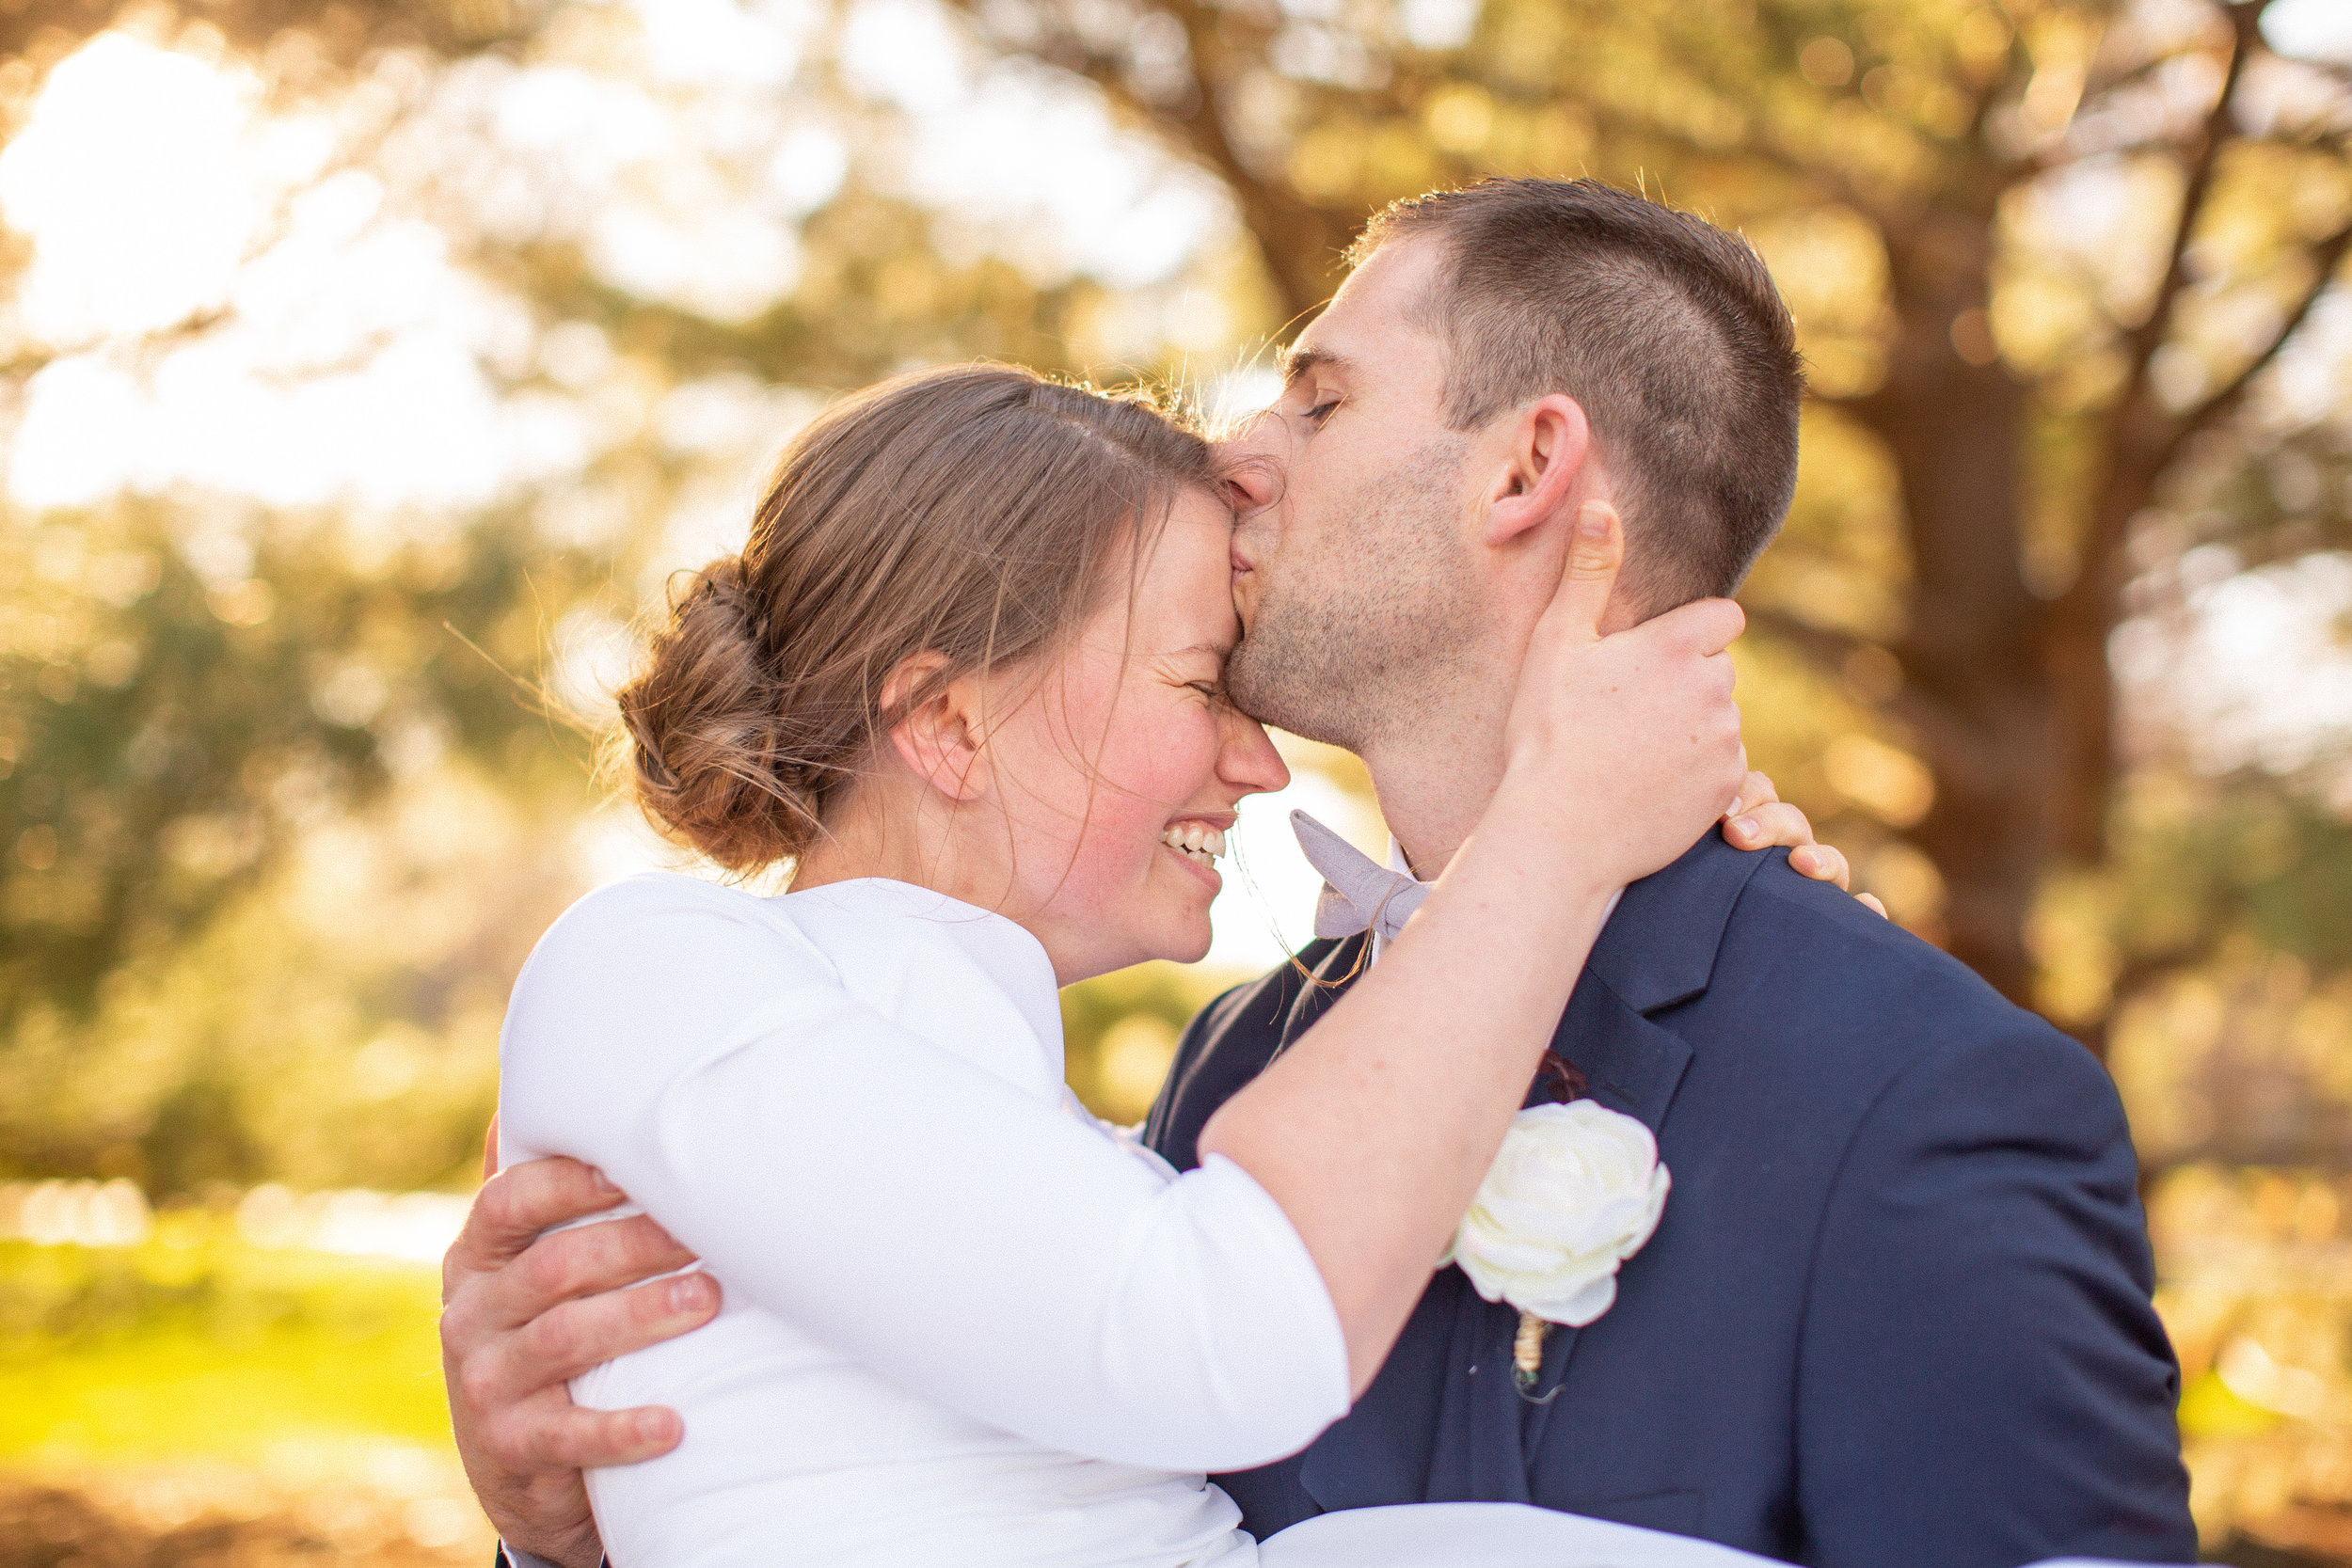 cute kissing couple wedding bride and groom des moines iowa wedding photography